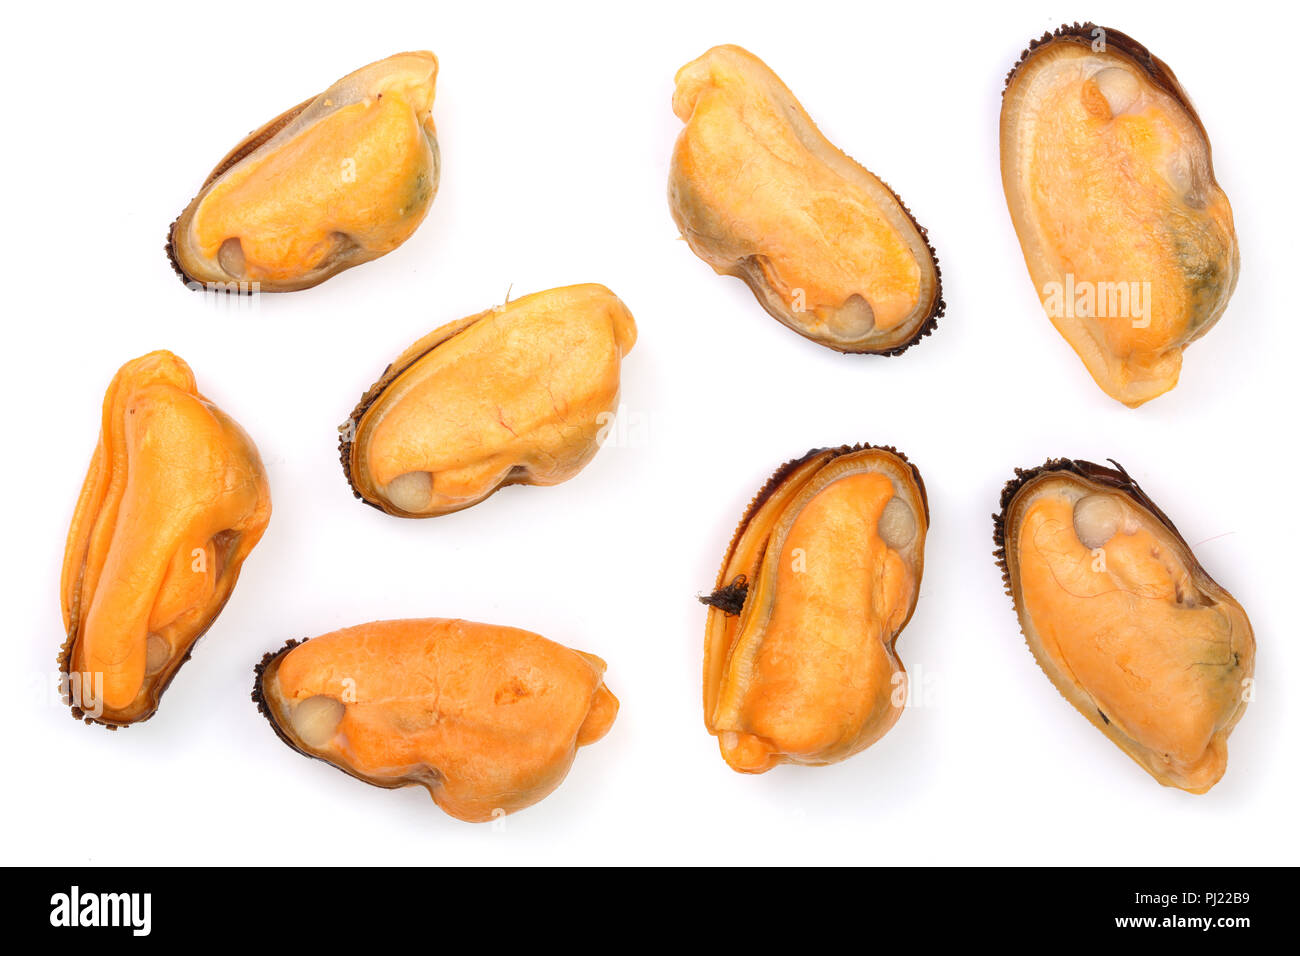 mussels isolated on white background. Top view. Flat lay. - Stock Image